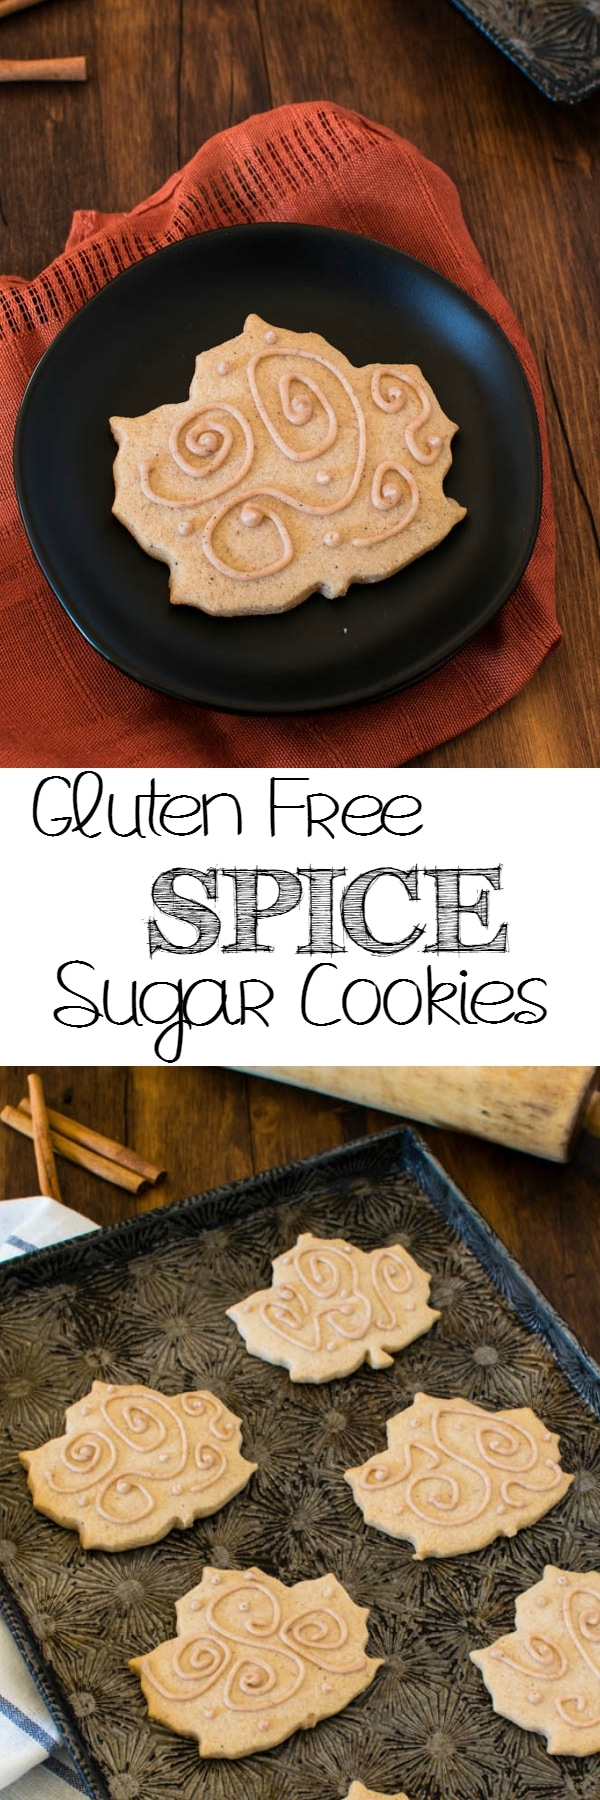 Add a little extra kick to the ordinary with these gluten free Spice Sugar Cookies. Perfect for the holiday cookie trays.